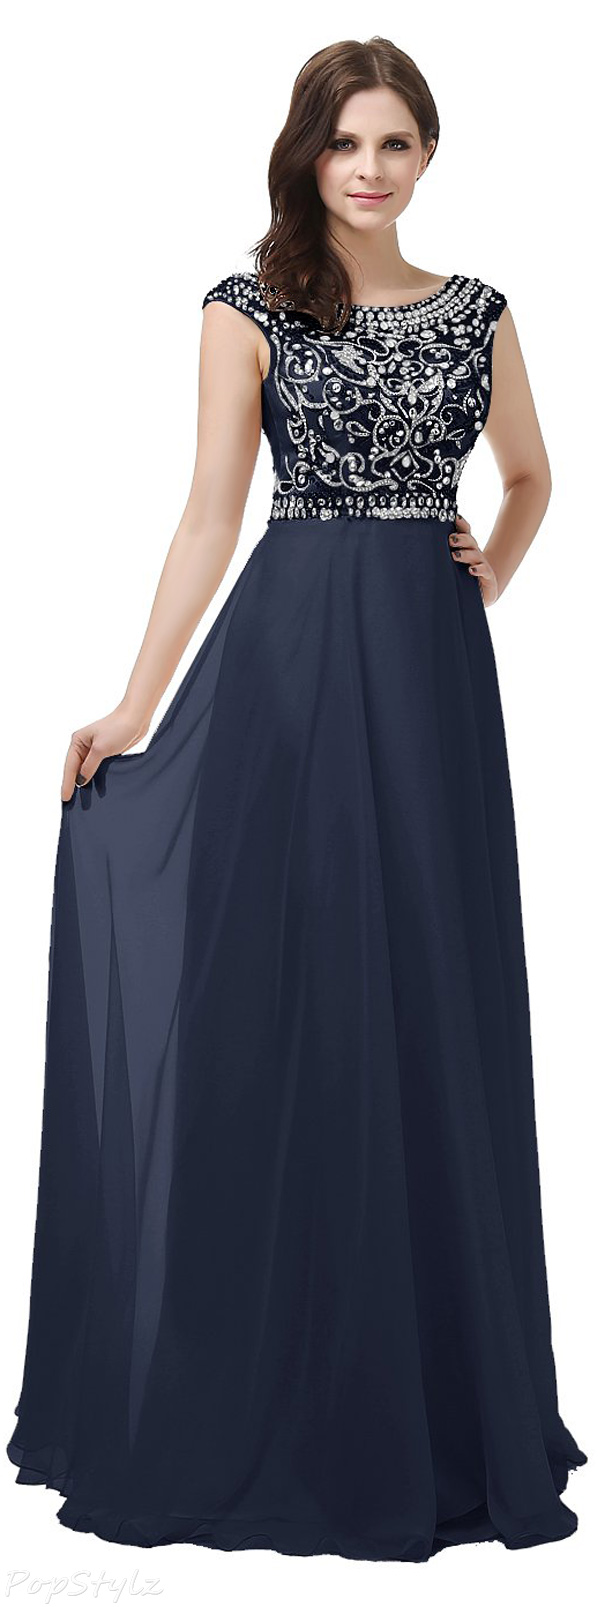 Diyouth Scoop Neck Beaded Evening Gown